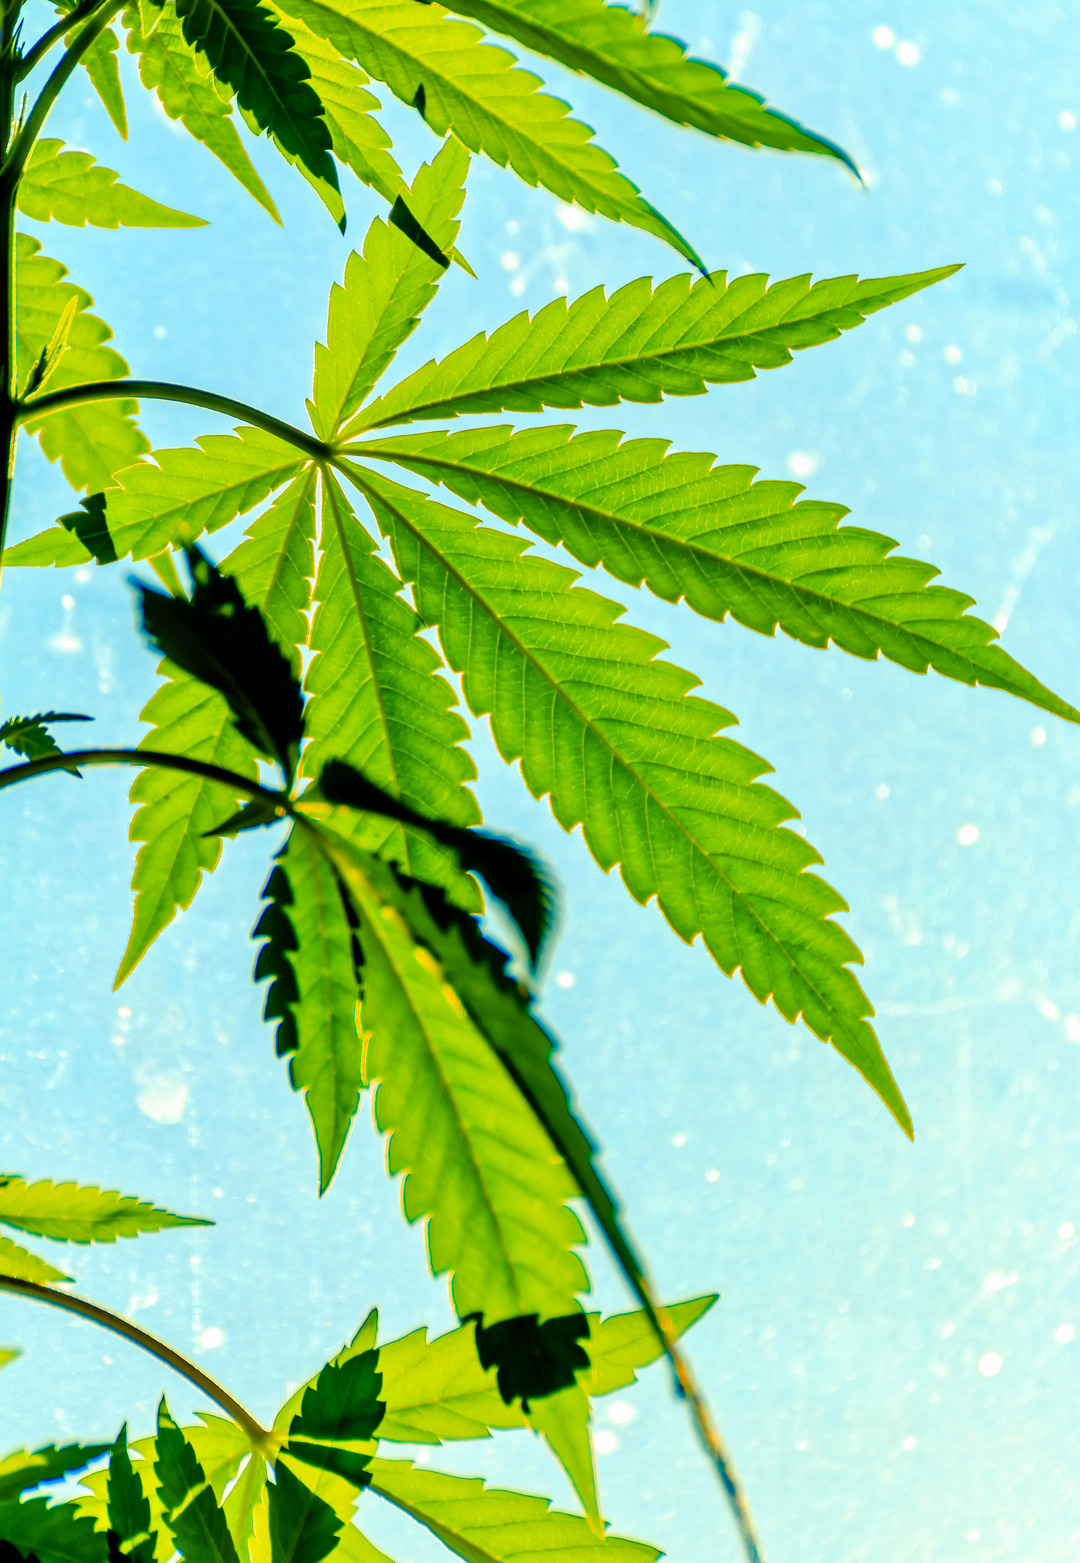 Beautiful Leaves with Beautiful Health Benefits Now Legal   Cannabis    BeautifulNow